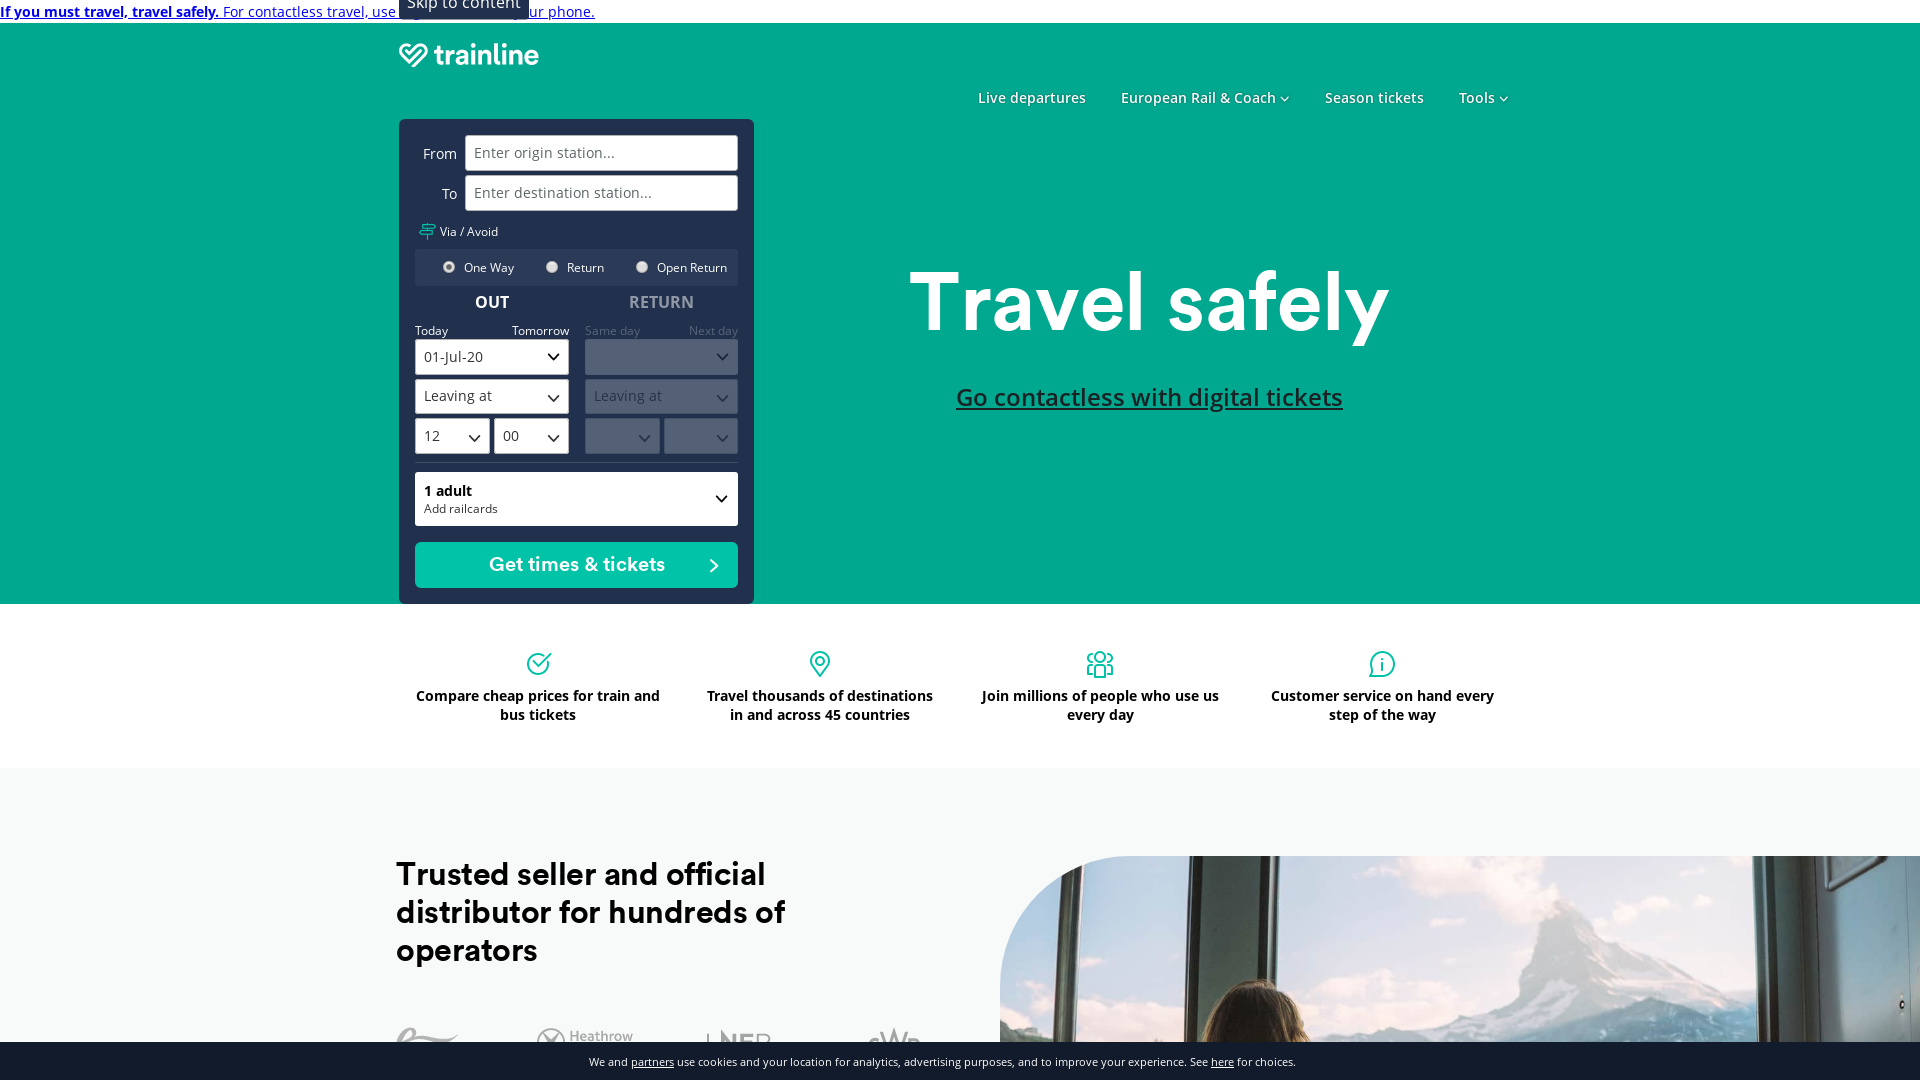 Trainline WW website